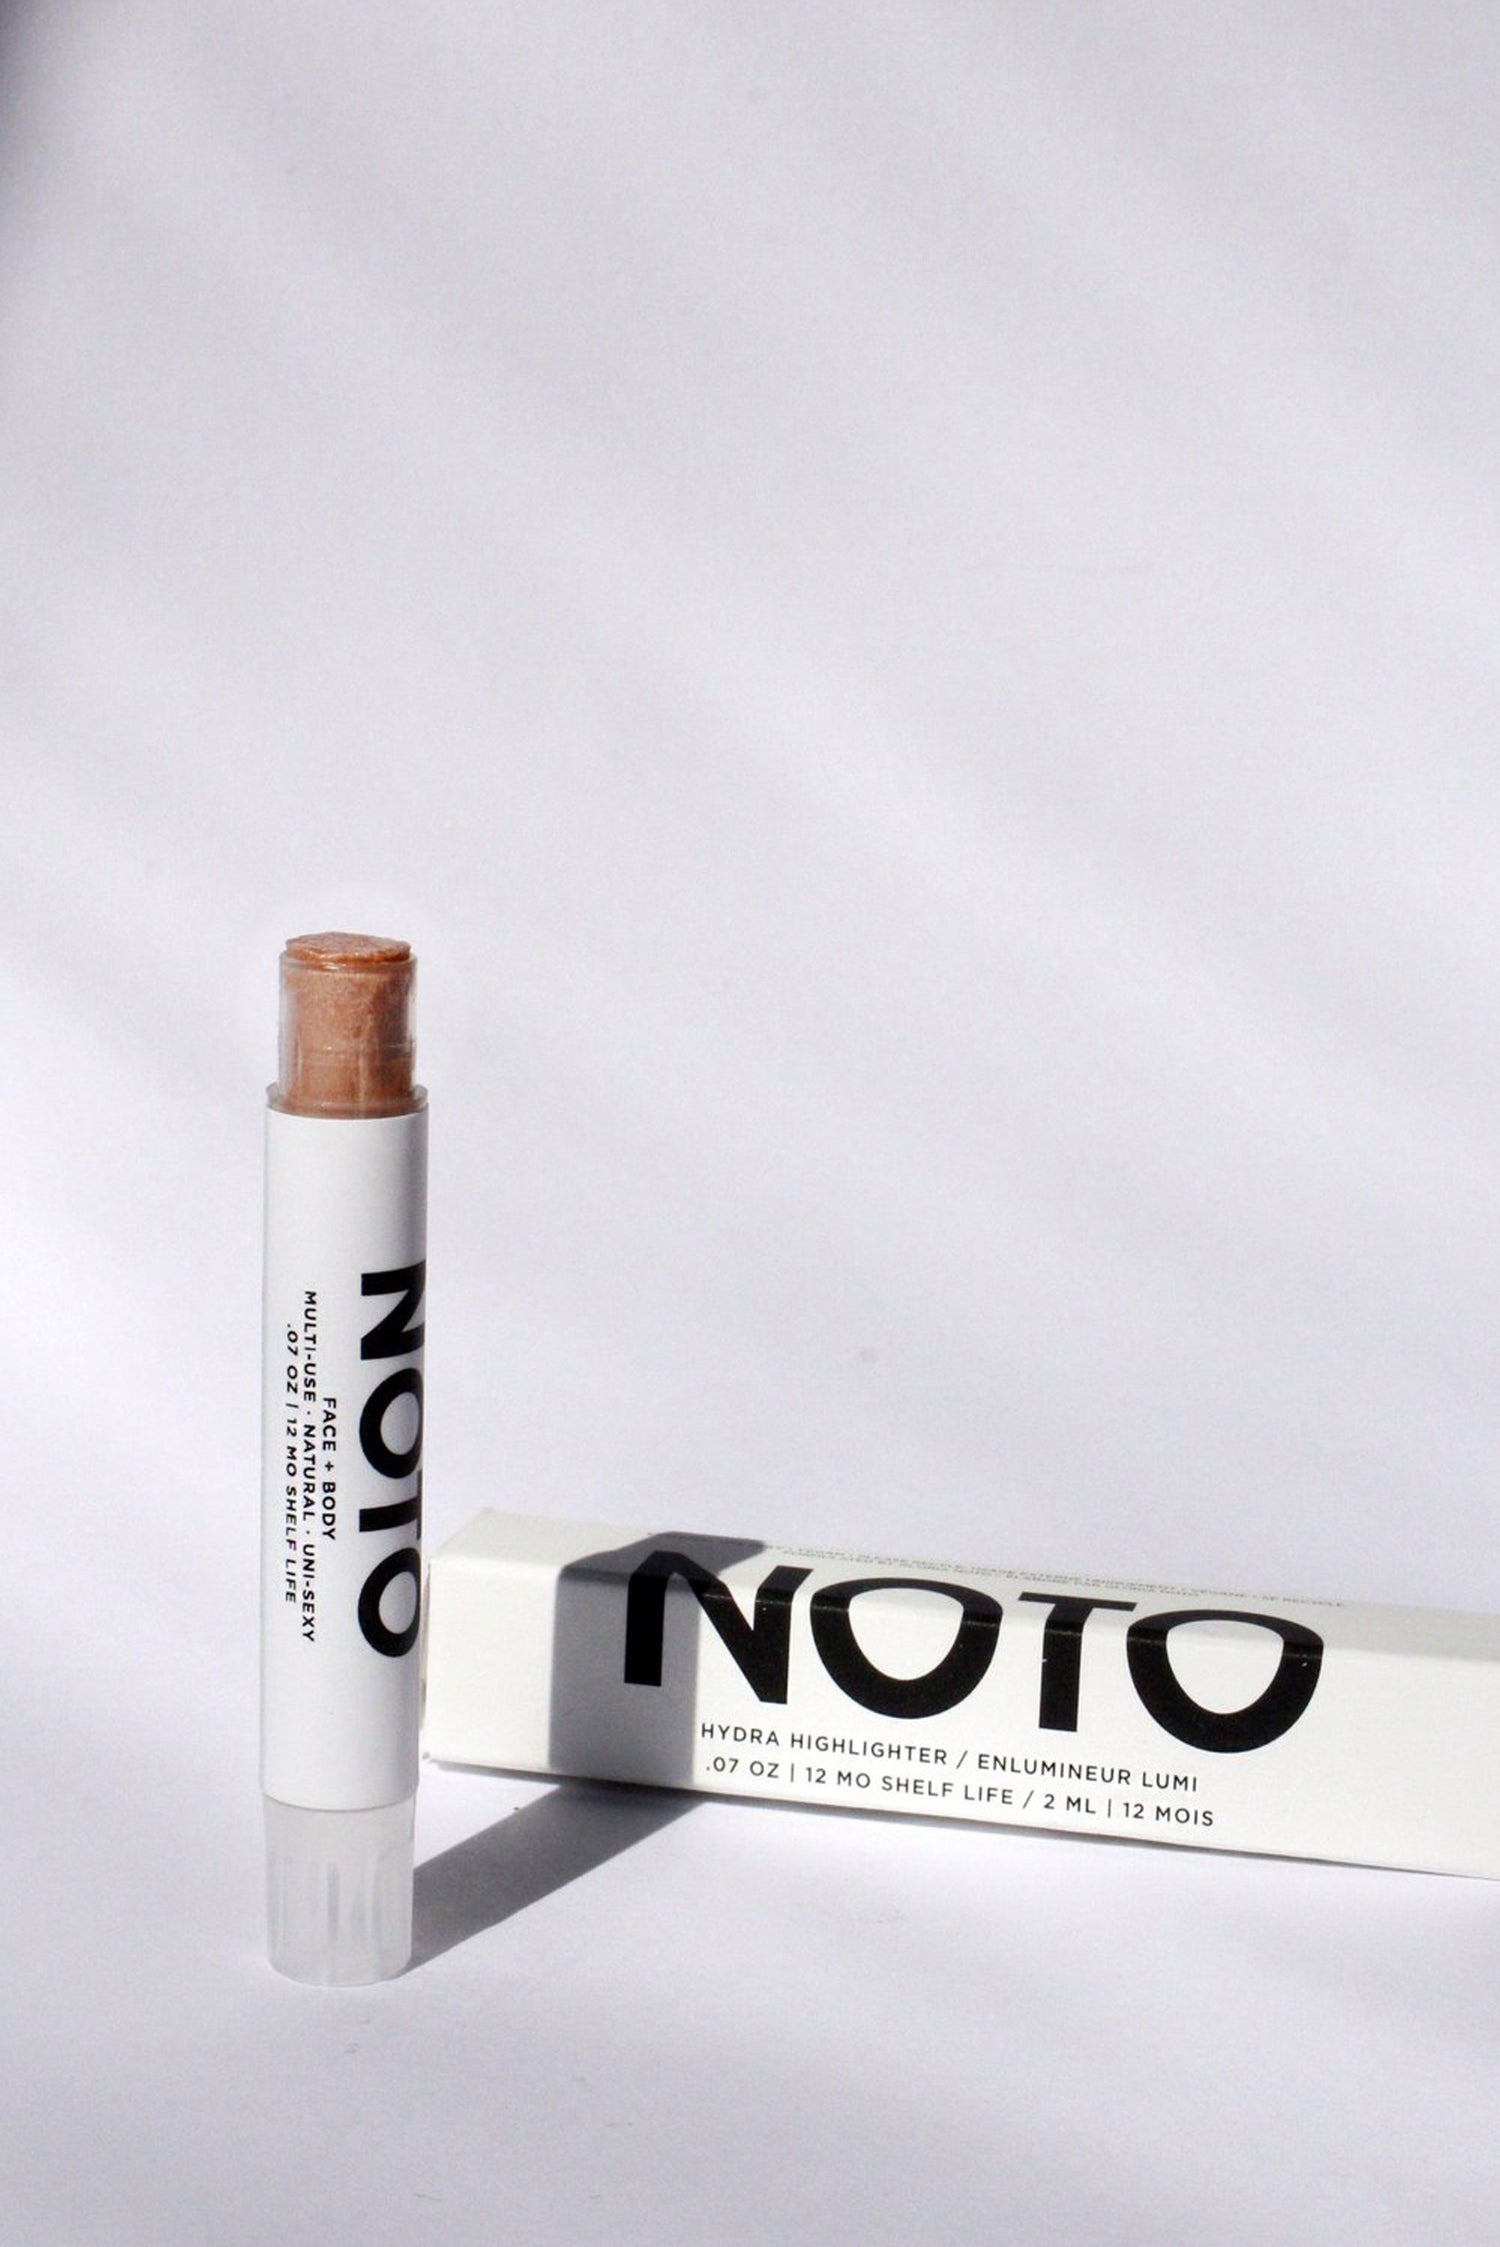 NOTO Hydra Highlighter Stick